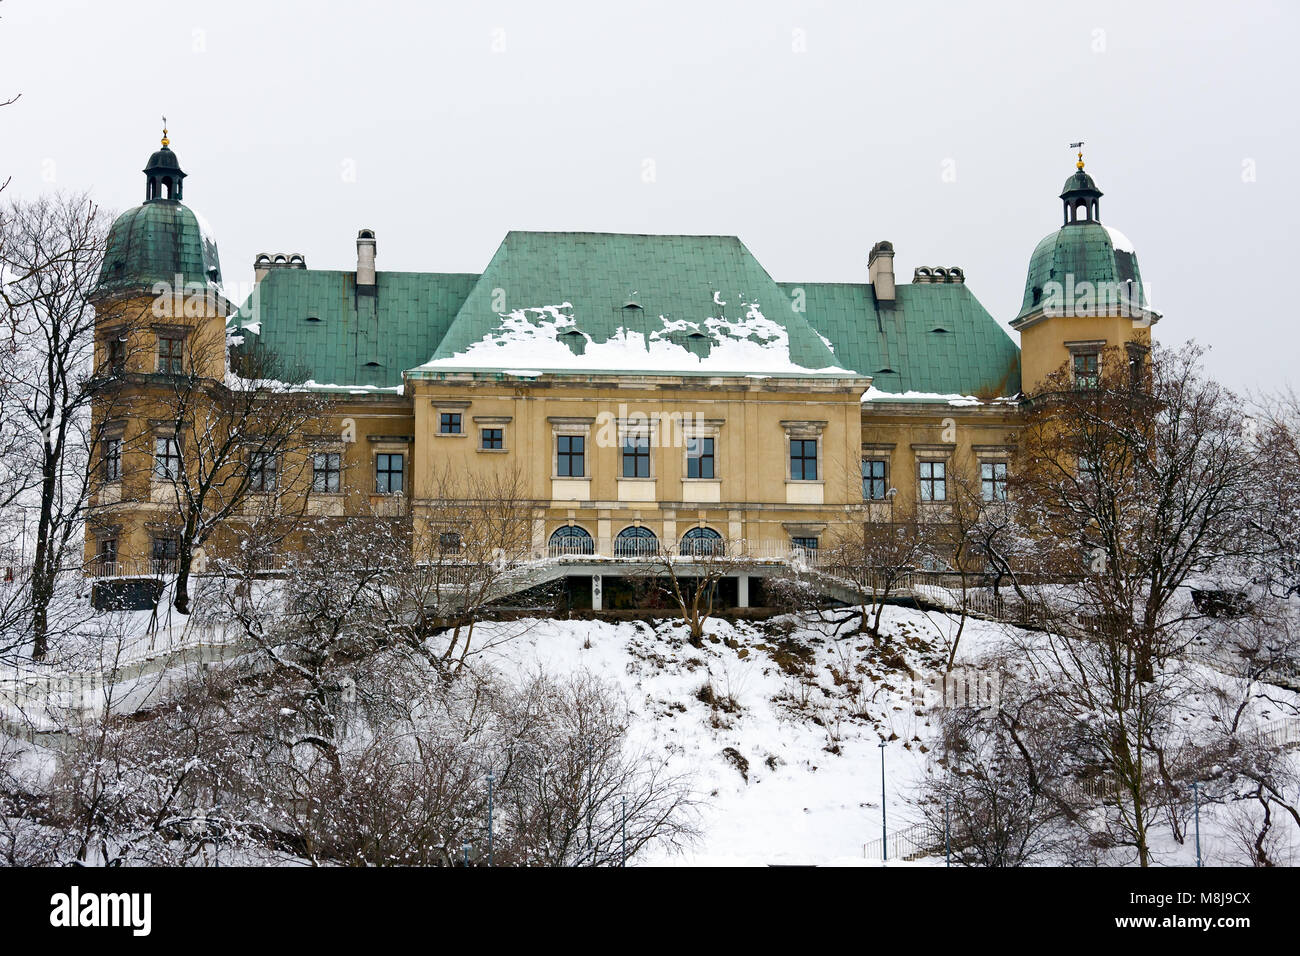 WARSAW CITY, POLAND - MARCH 15, 2010: Baroque-Neoclassical Ujazdow Castle in winter time, between Ujazdow Park and Stock Photo